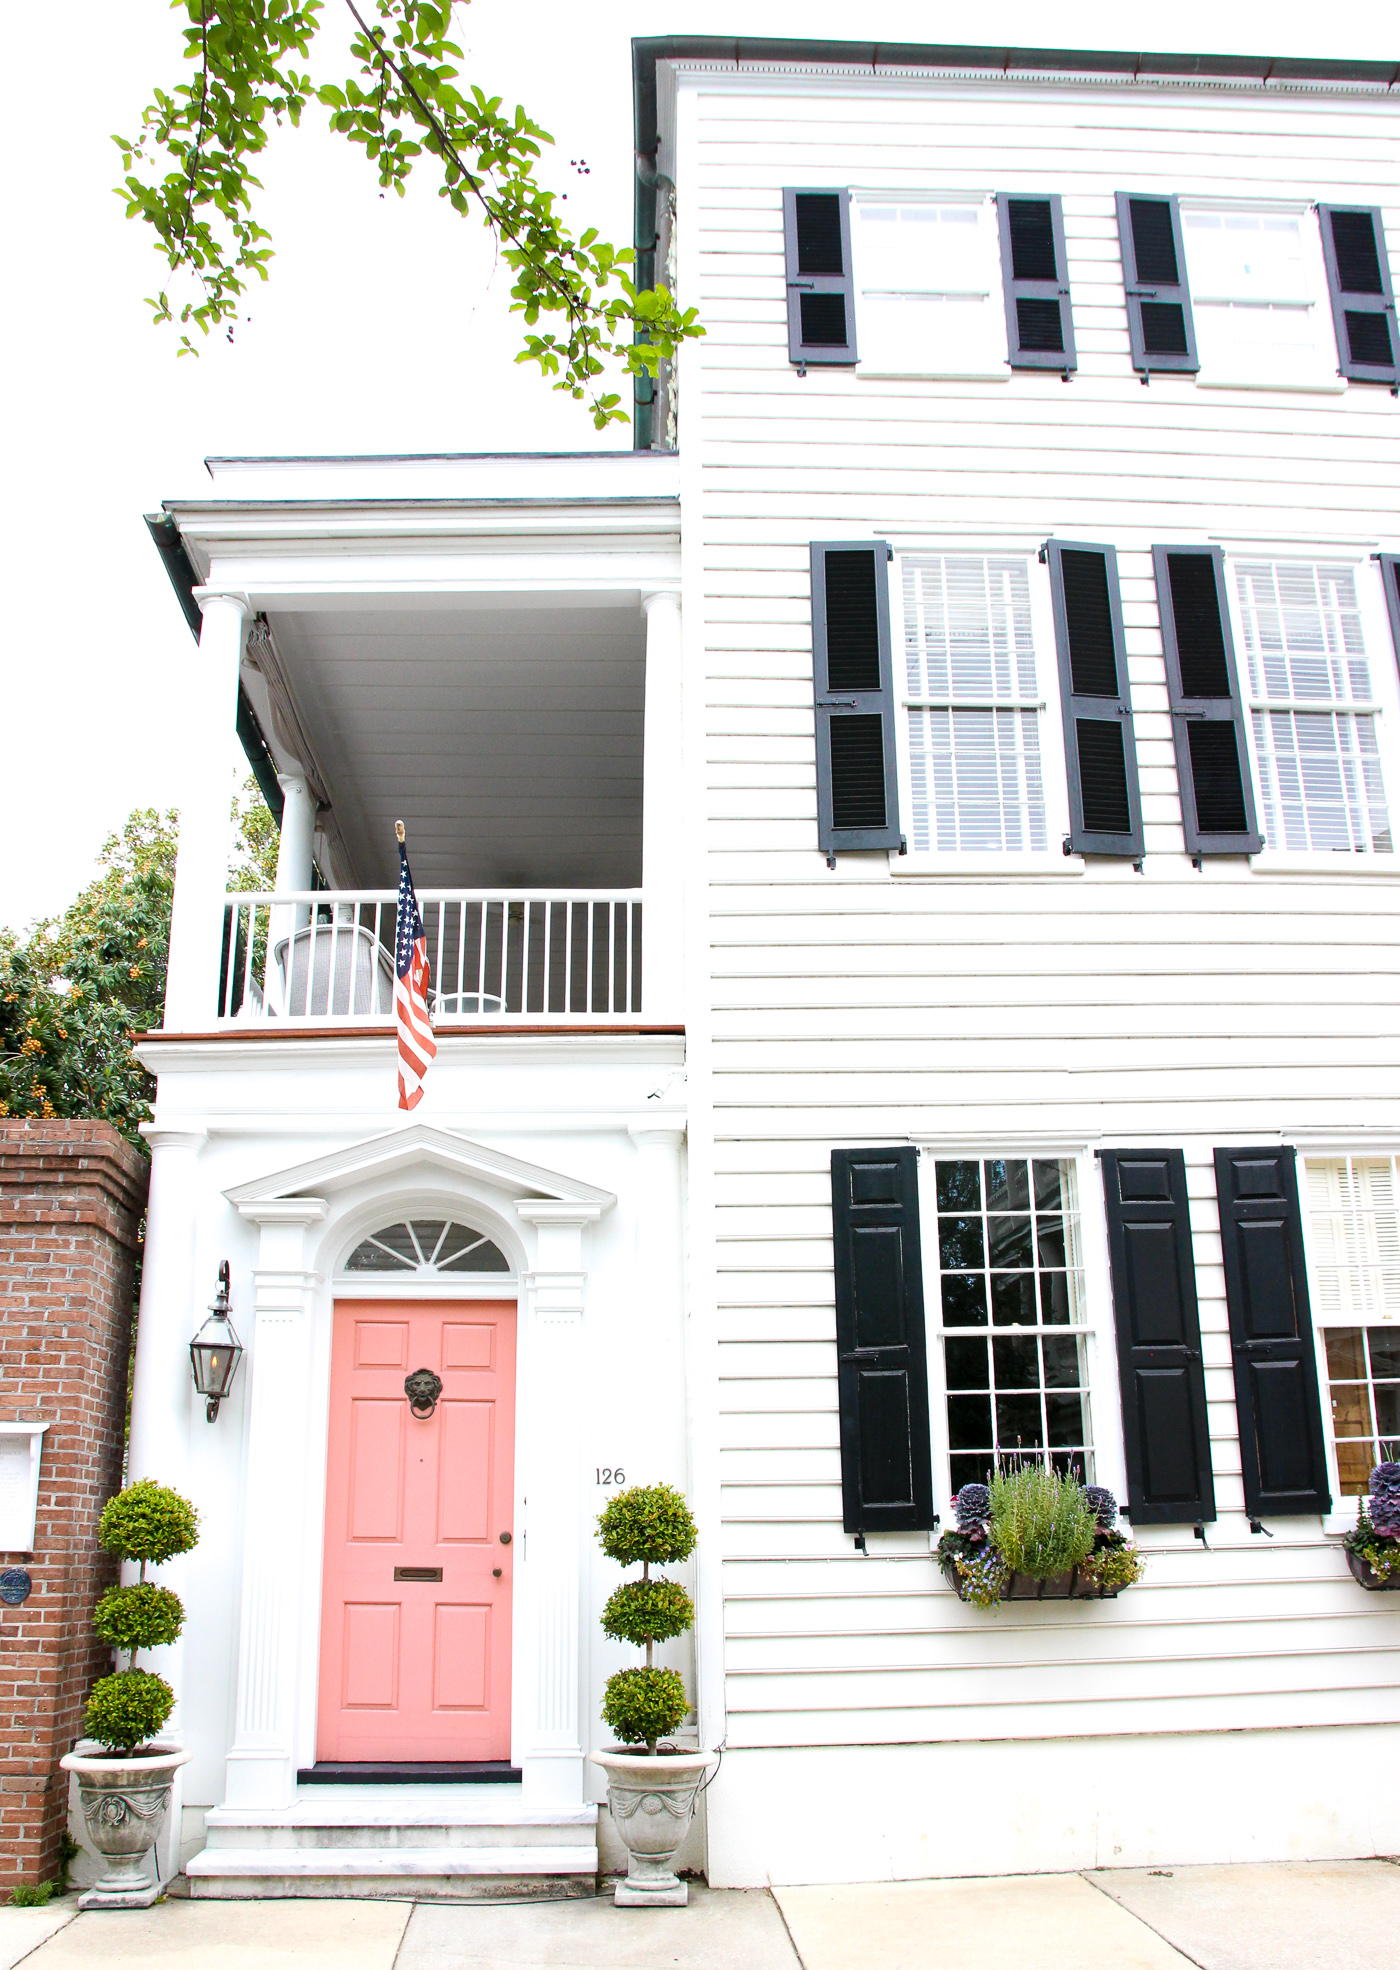 Through Traveling, I Have Fallen In LOVE With Houses That Have Pink Doors.  Especially